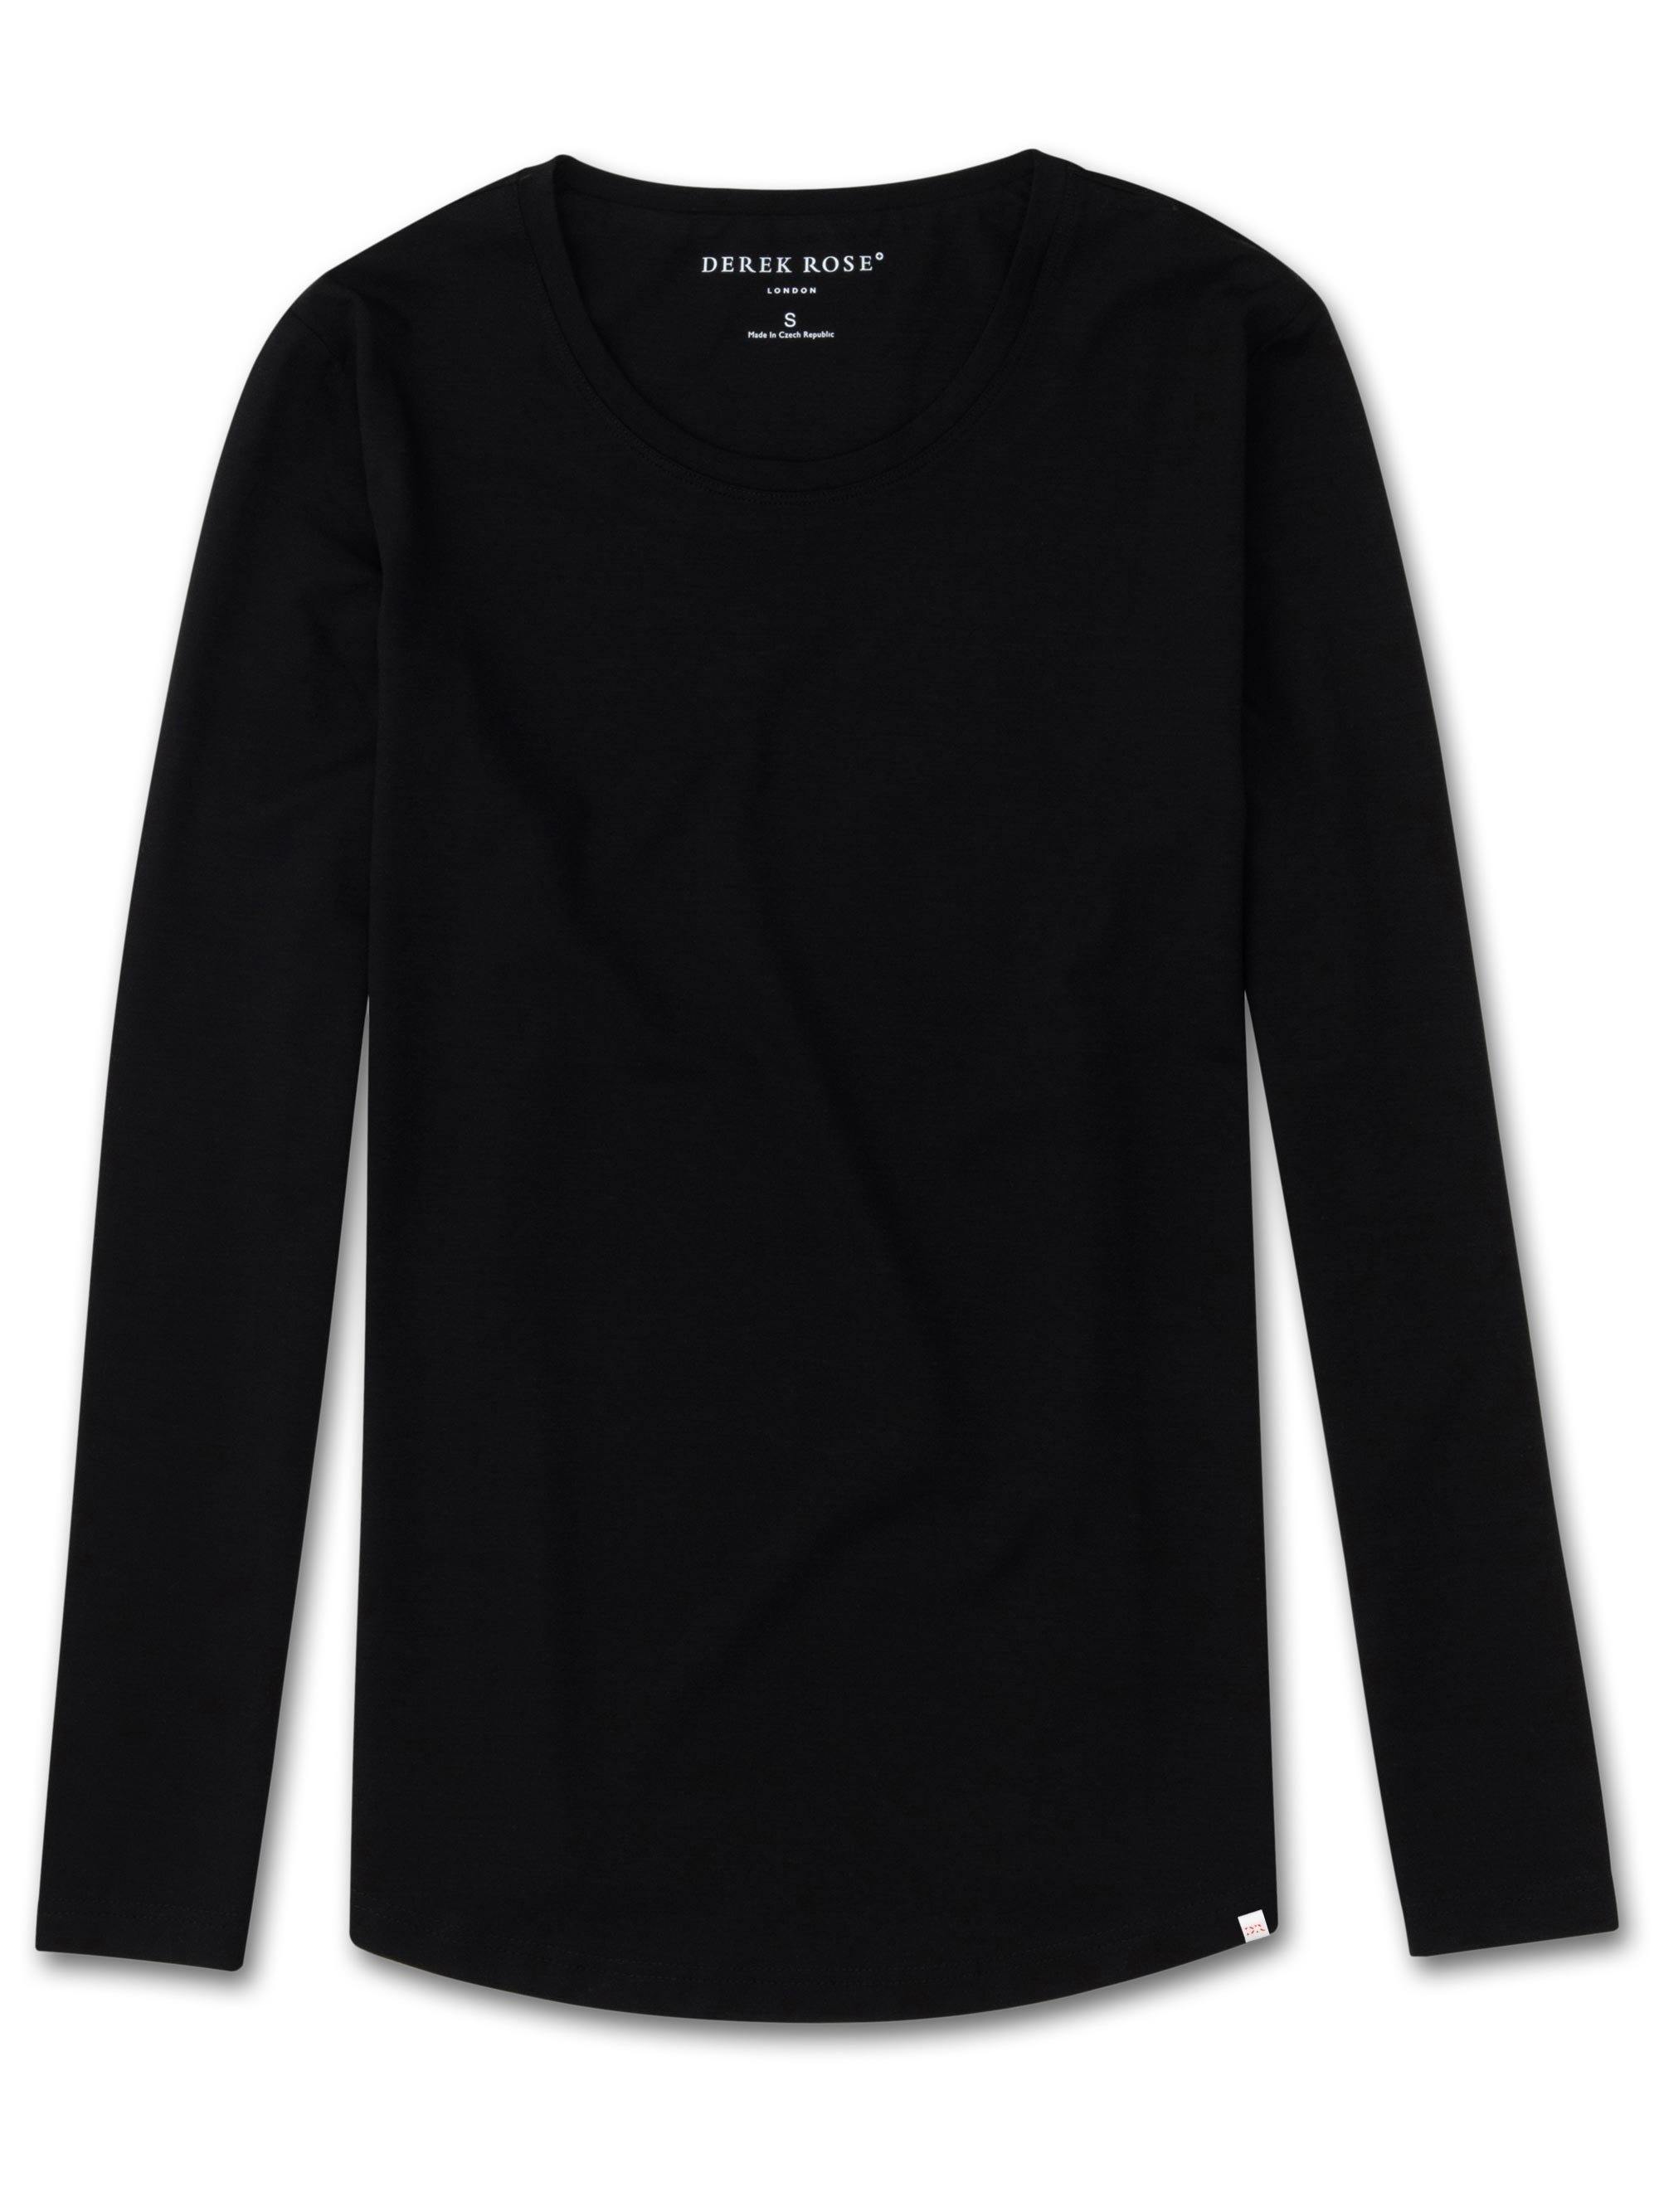 Women's Long Sleeve T-Shirt Lara Micro Modal Stretch Black